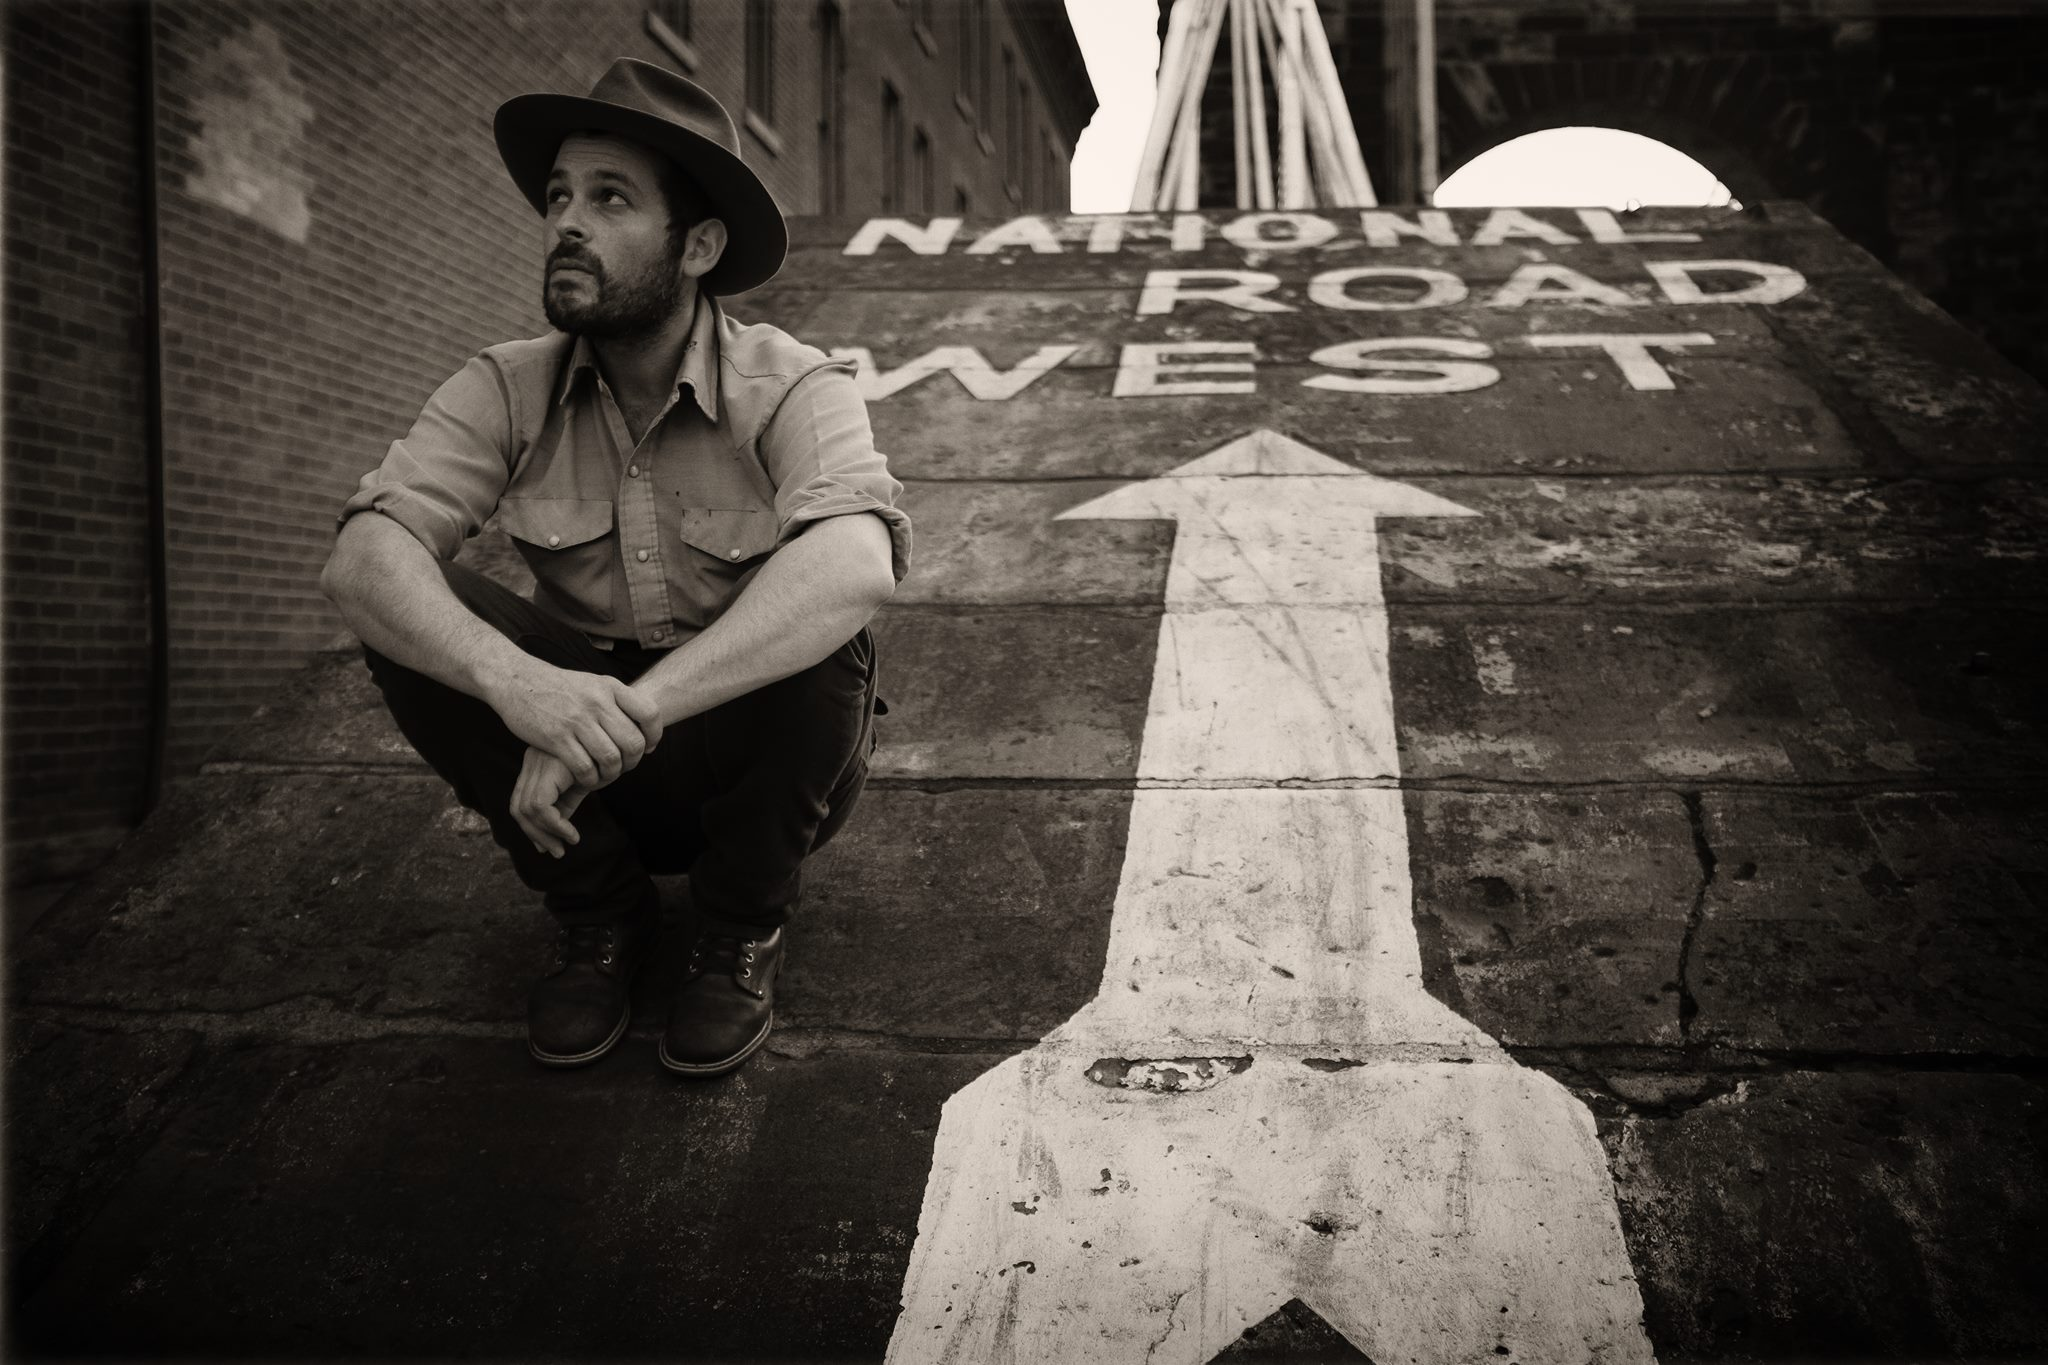 Gregory Alan Isakov is due to appear this Sunday at Red Rocks (photo: Jamie Mefford)